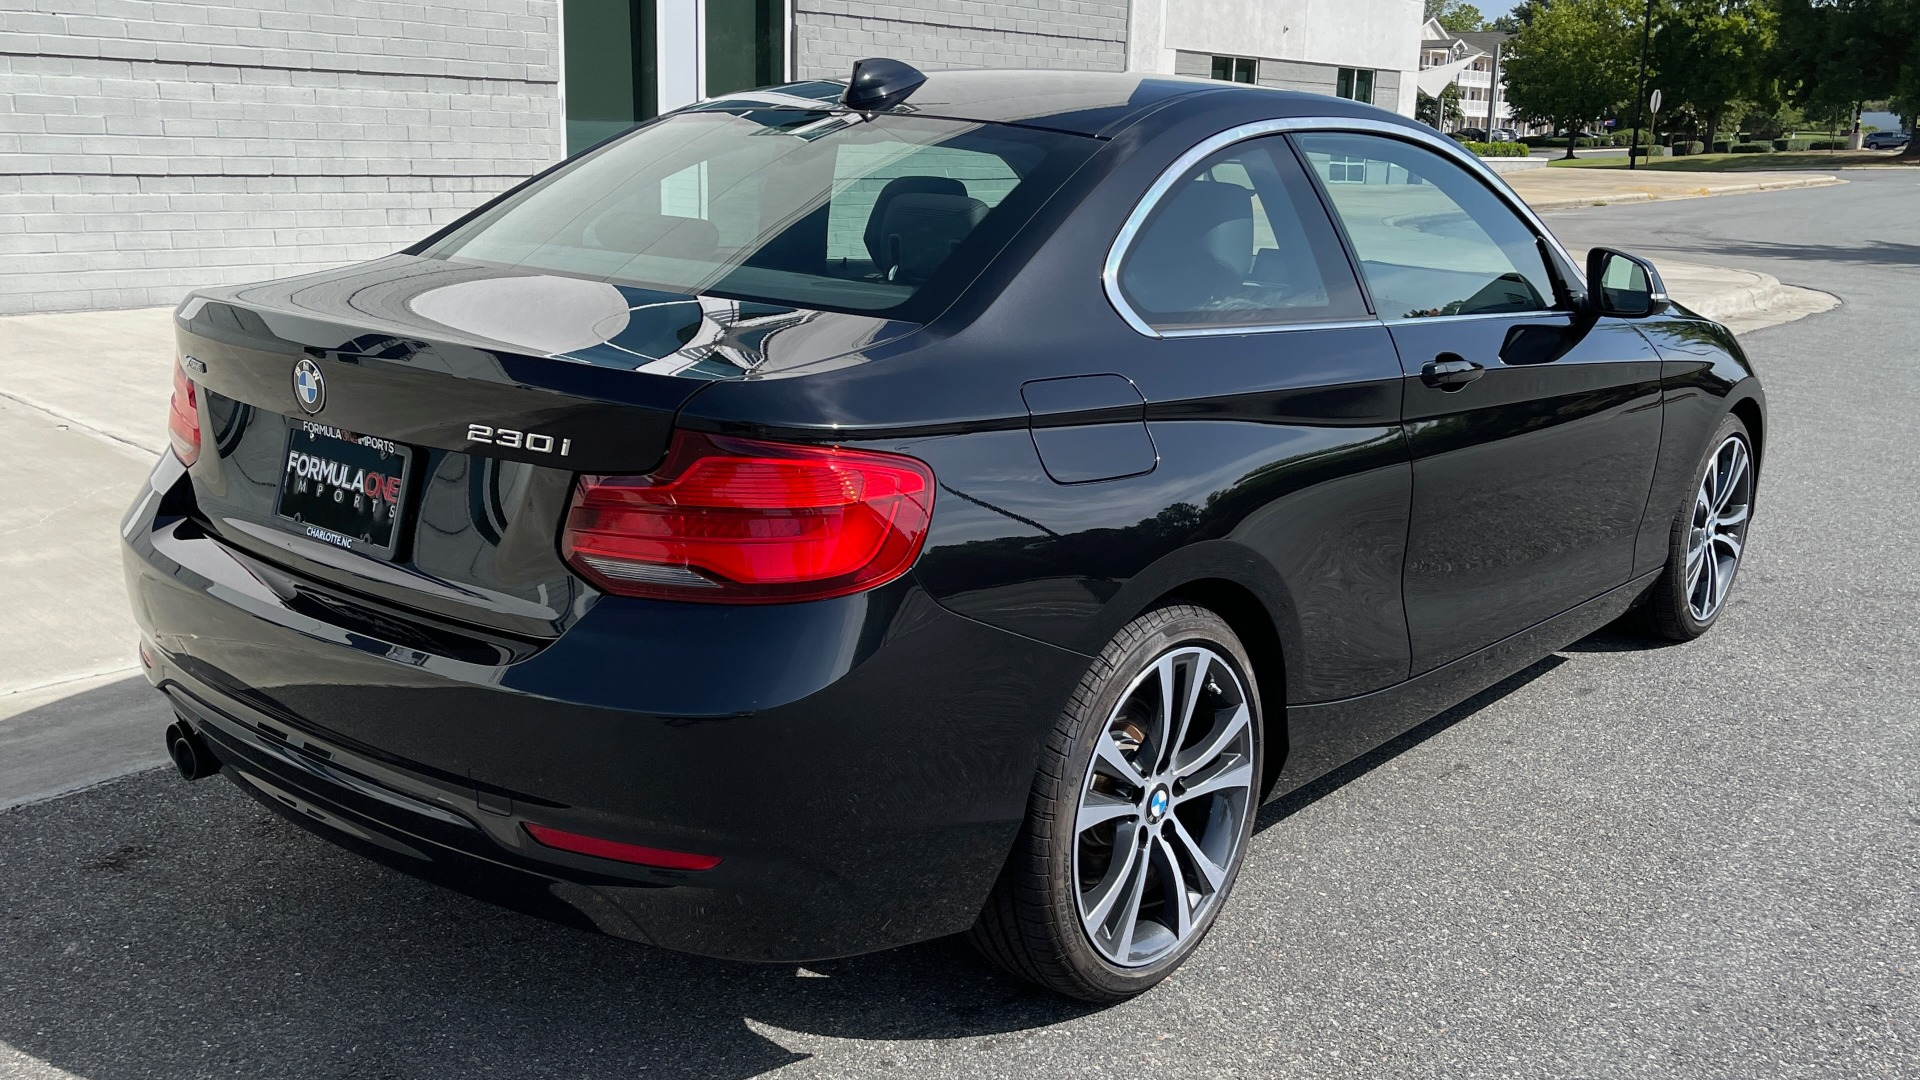 Used 2018 BMW 2 SERIES 230I XDRIVE PREMIUM / CONV PKG / NAV / SUNROOF / REARVIEW for sale $30,795 at Formula Imports in Charlotte NC 28227 2